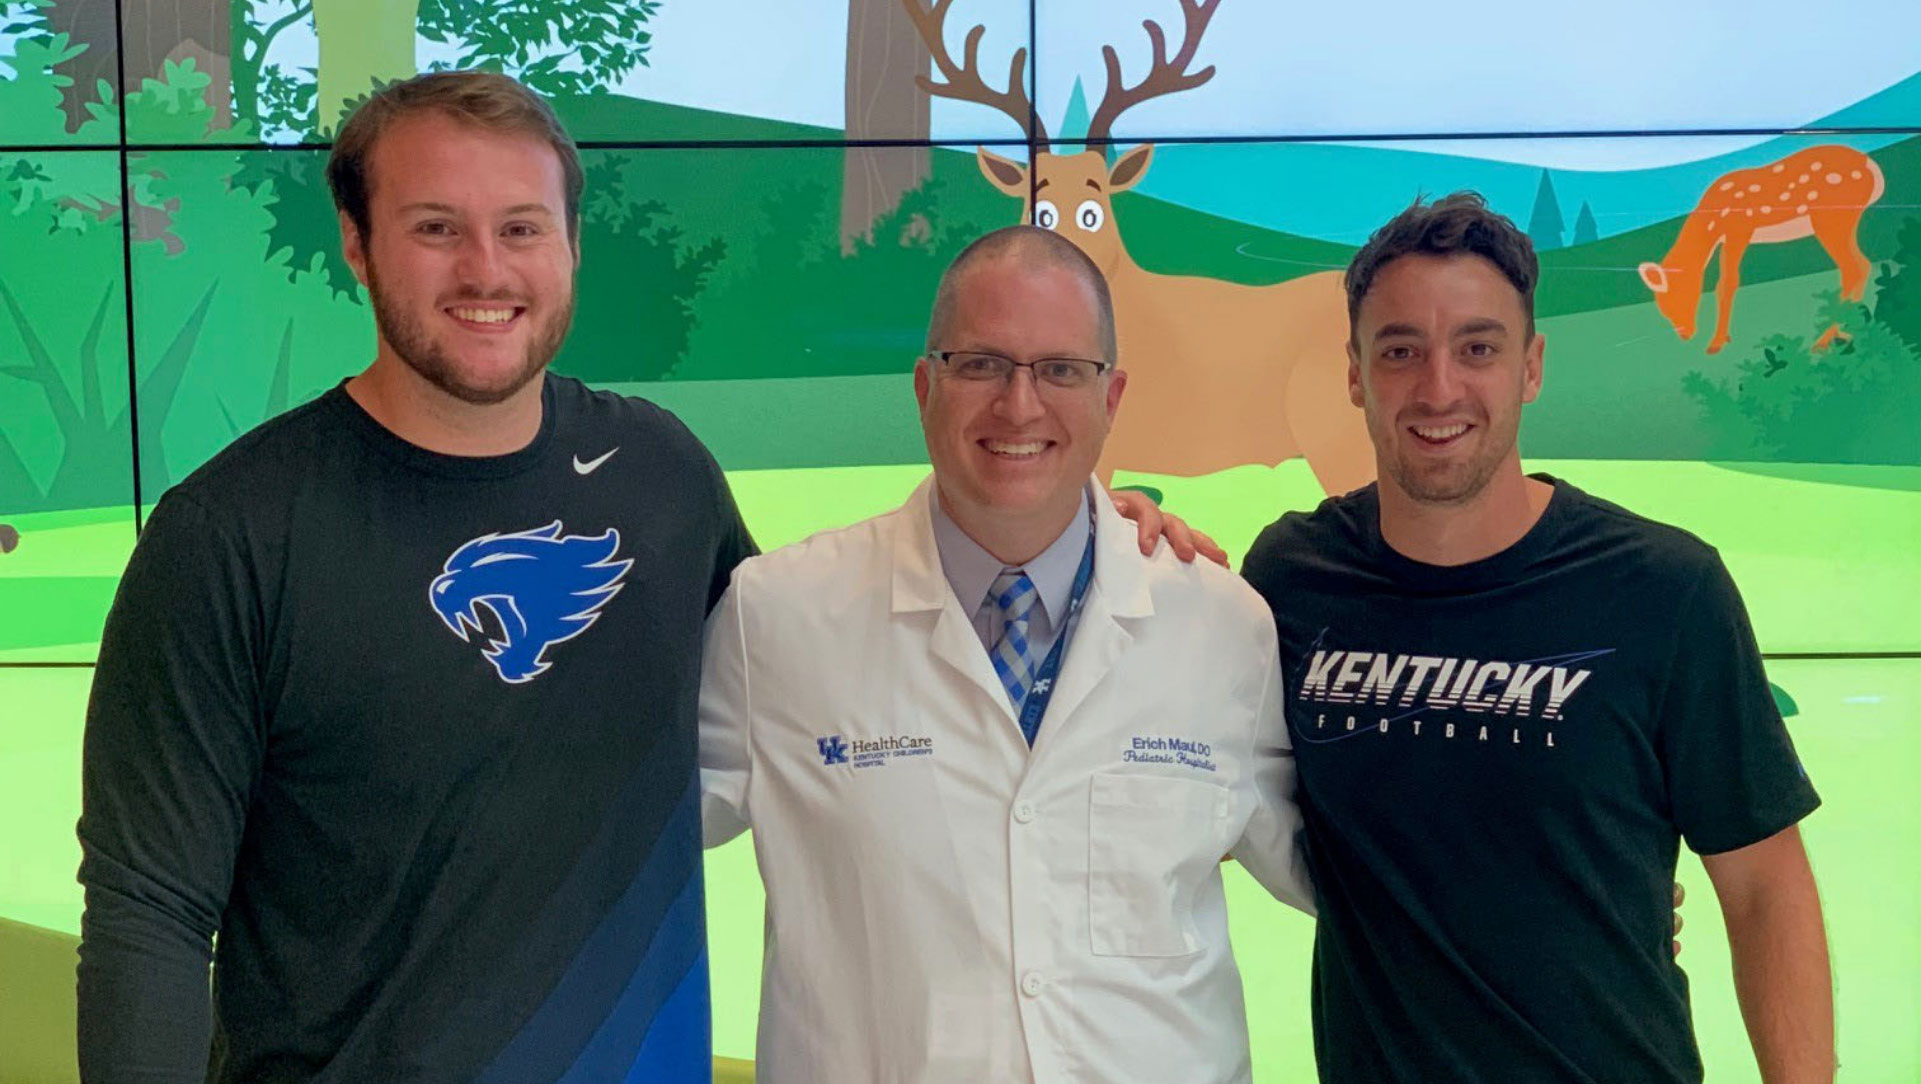 Luke and Max Duffy, a wiry-looking young white man with brown hair, pose for a photo with Dr. Erich Maul, a doctor in a white coat with glasses and short hair.